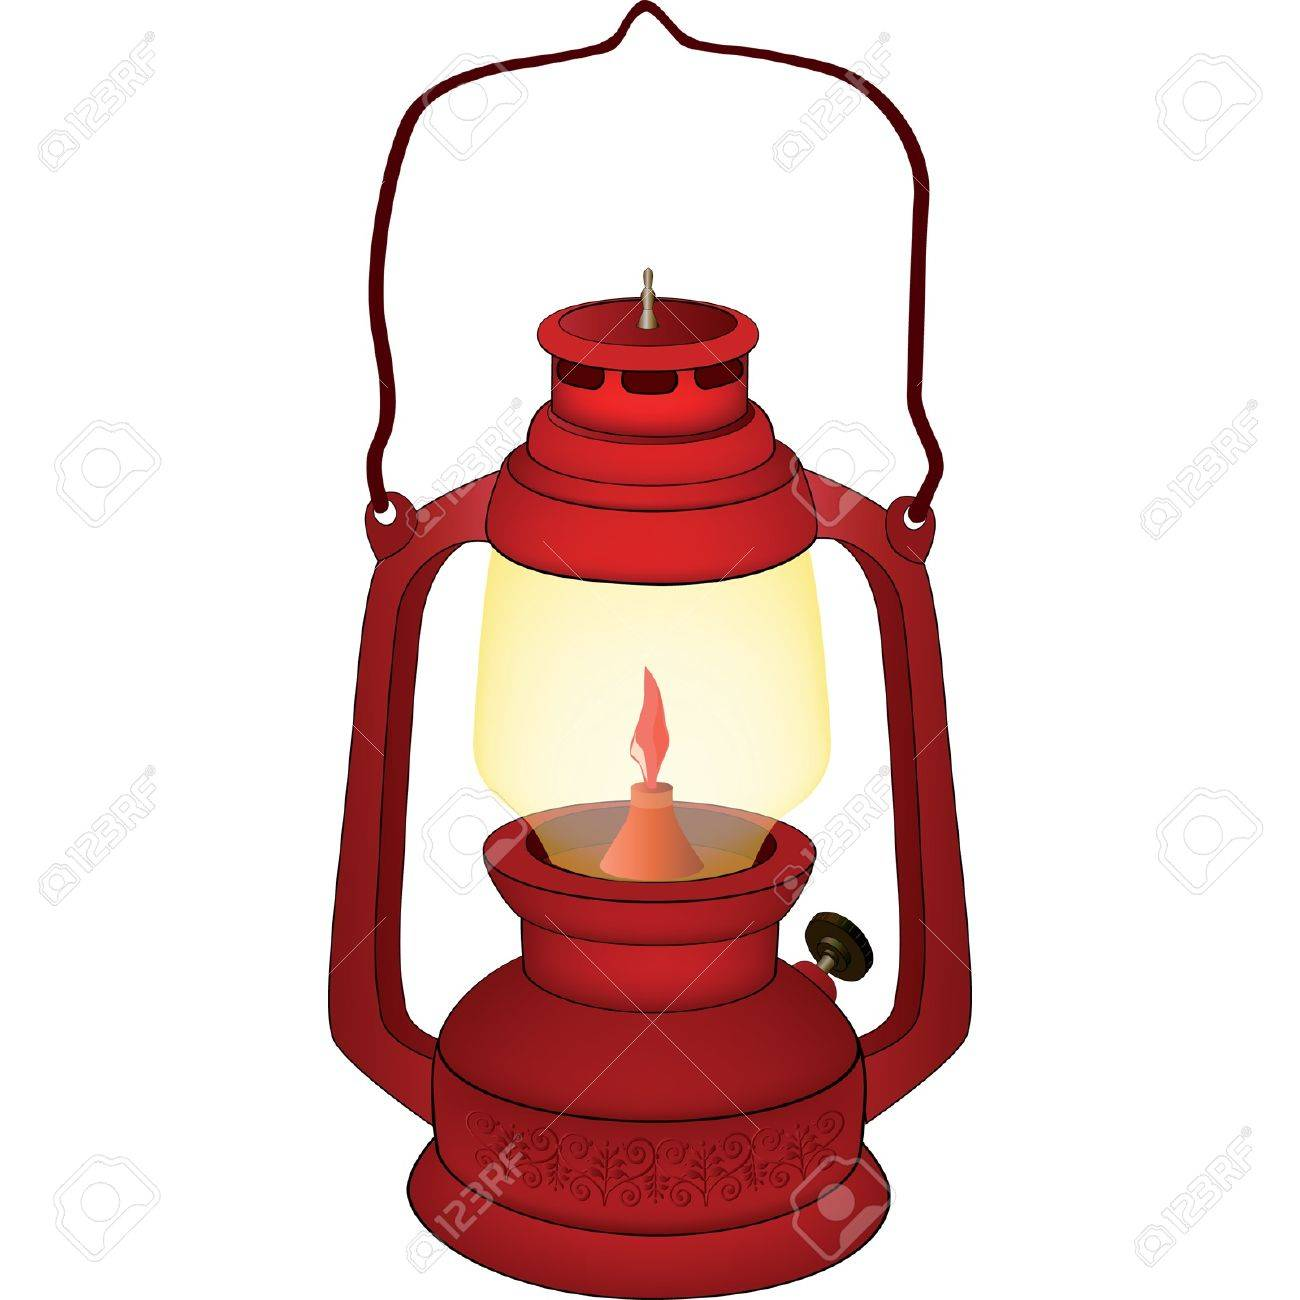 Old Red Lamp Stock Vector